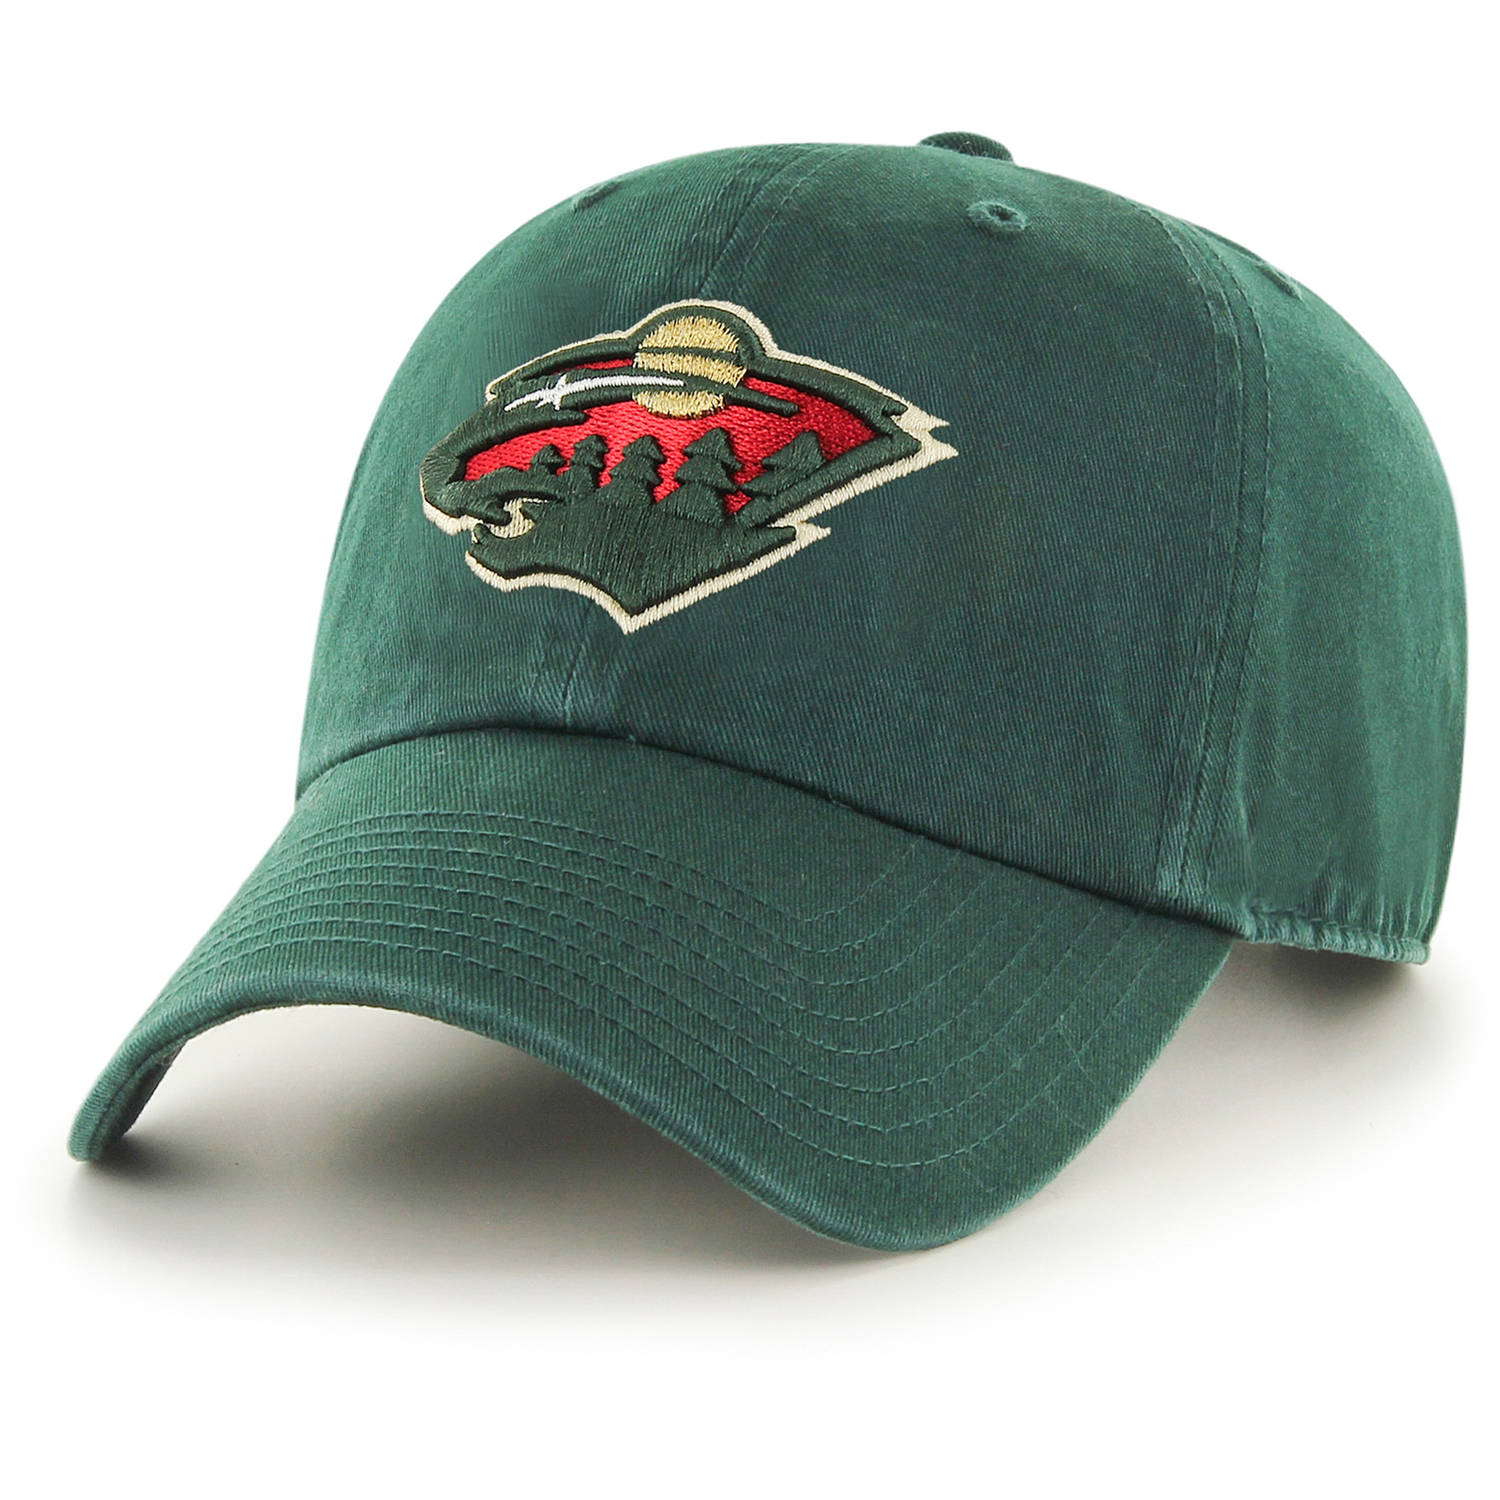 NHL Minnesota Wild Cleanup Cap / Hat by Fan Favorite